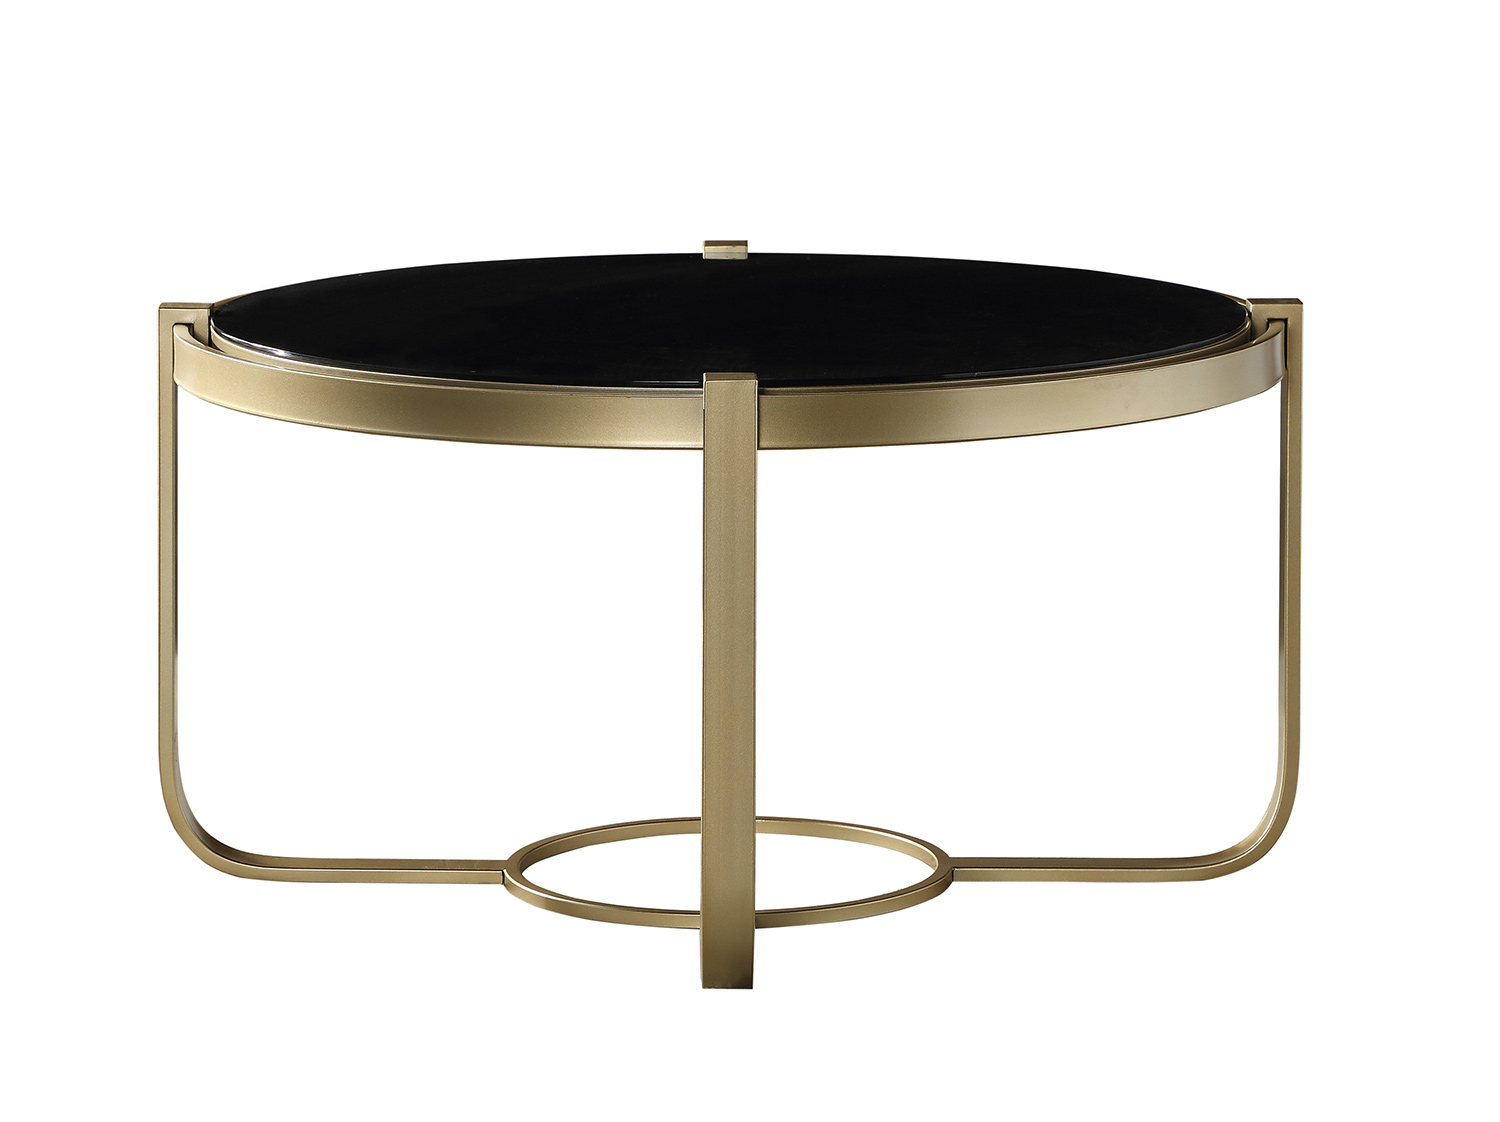 Homelegance Caracal Round Cocktail Table with Black Glass Insert - Gold